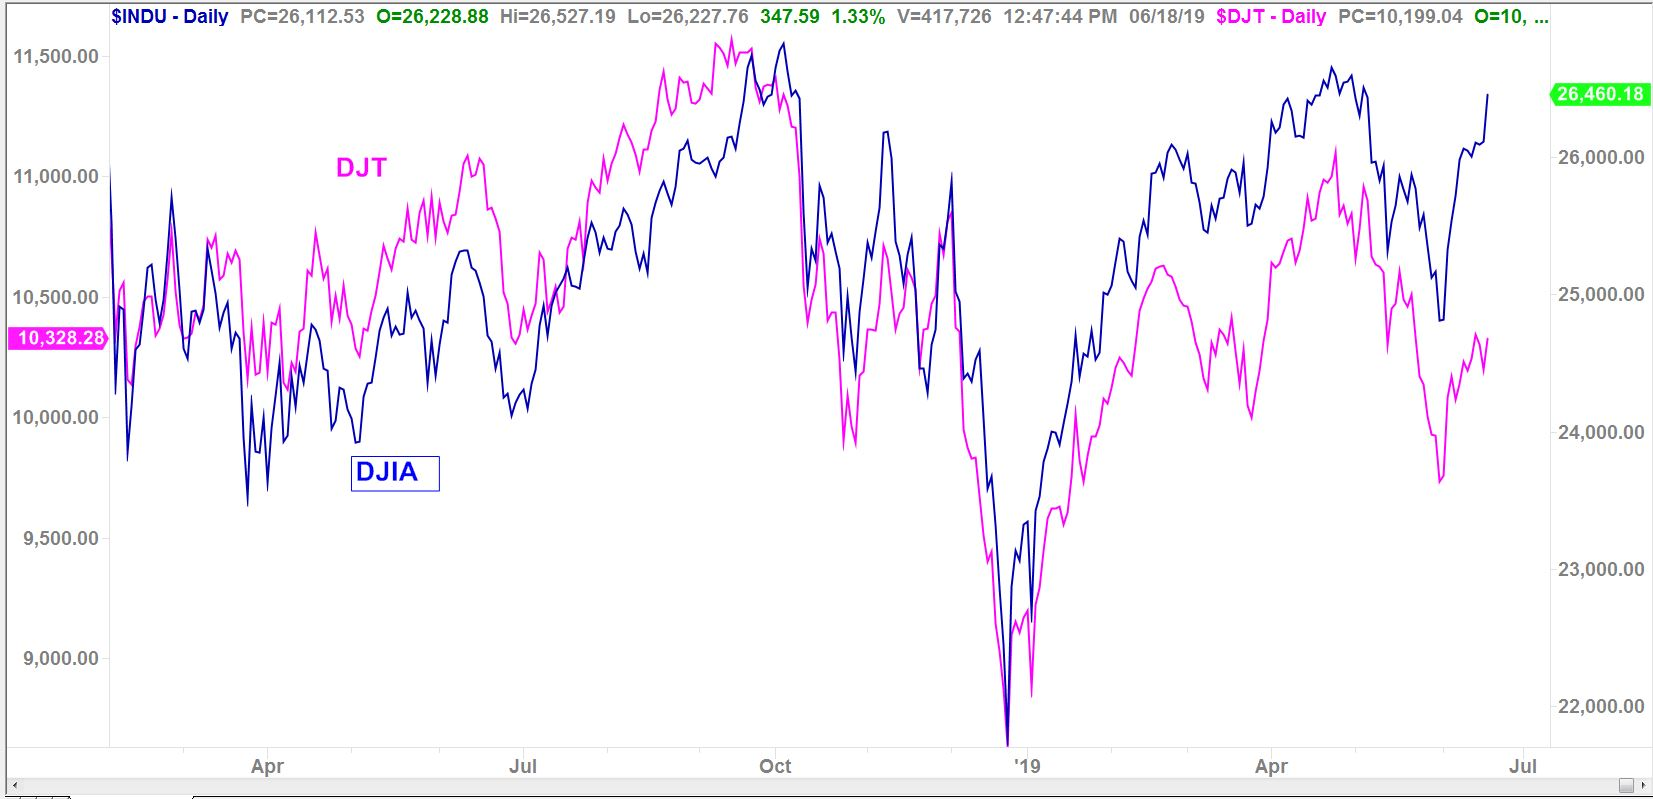 Chart of the Dow showing the positive correlation between the DJIA and DJT stocks.